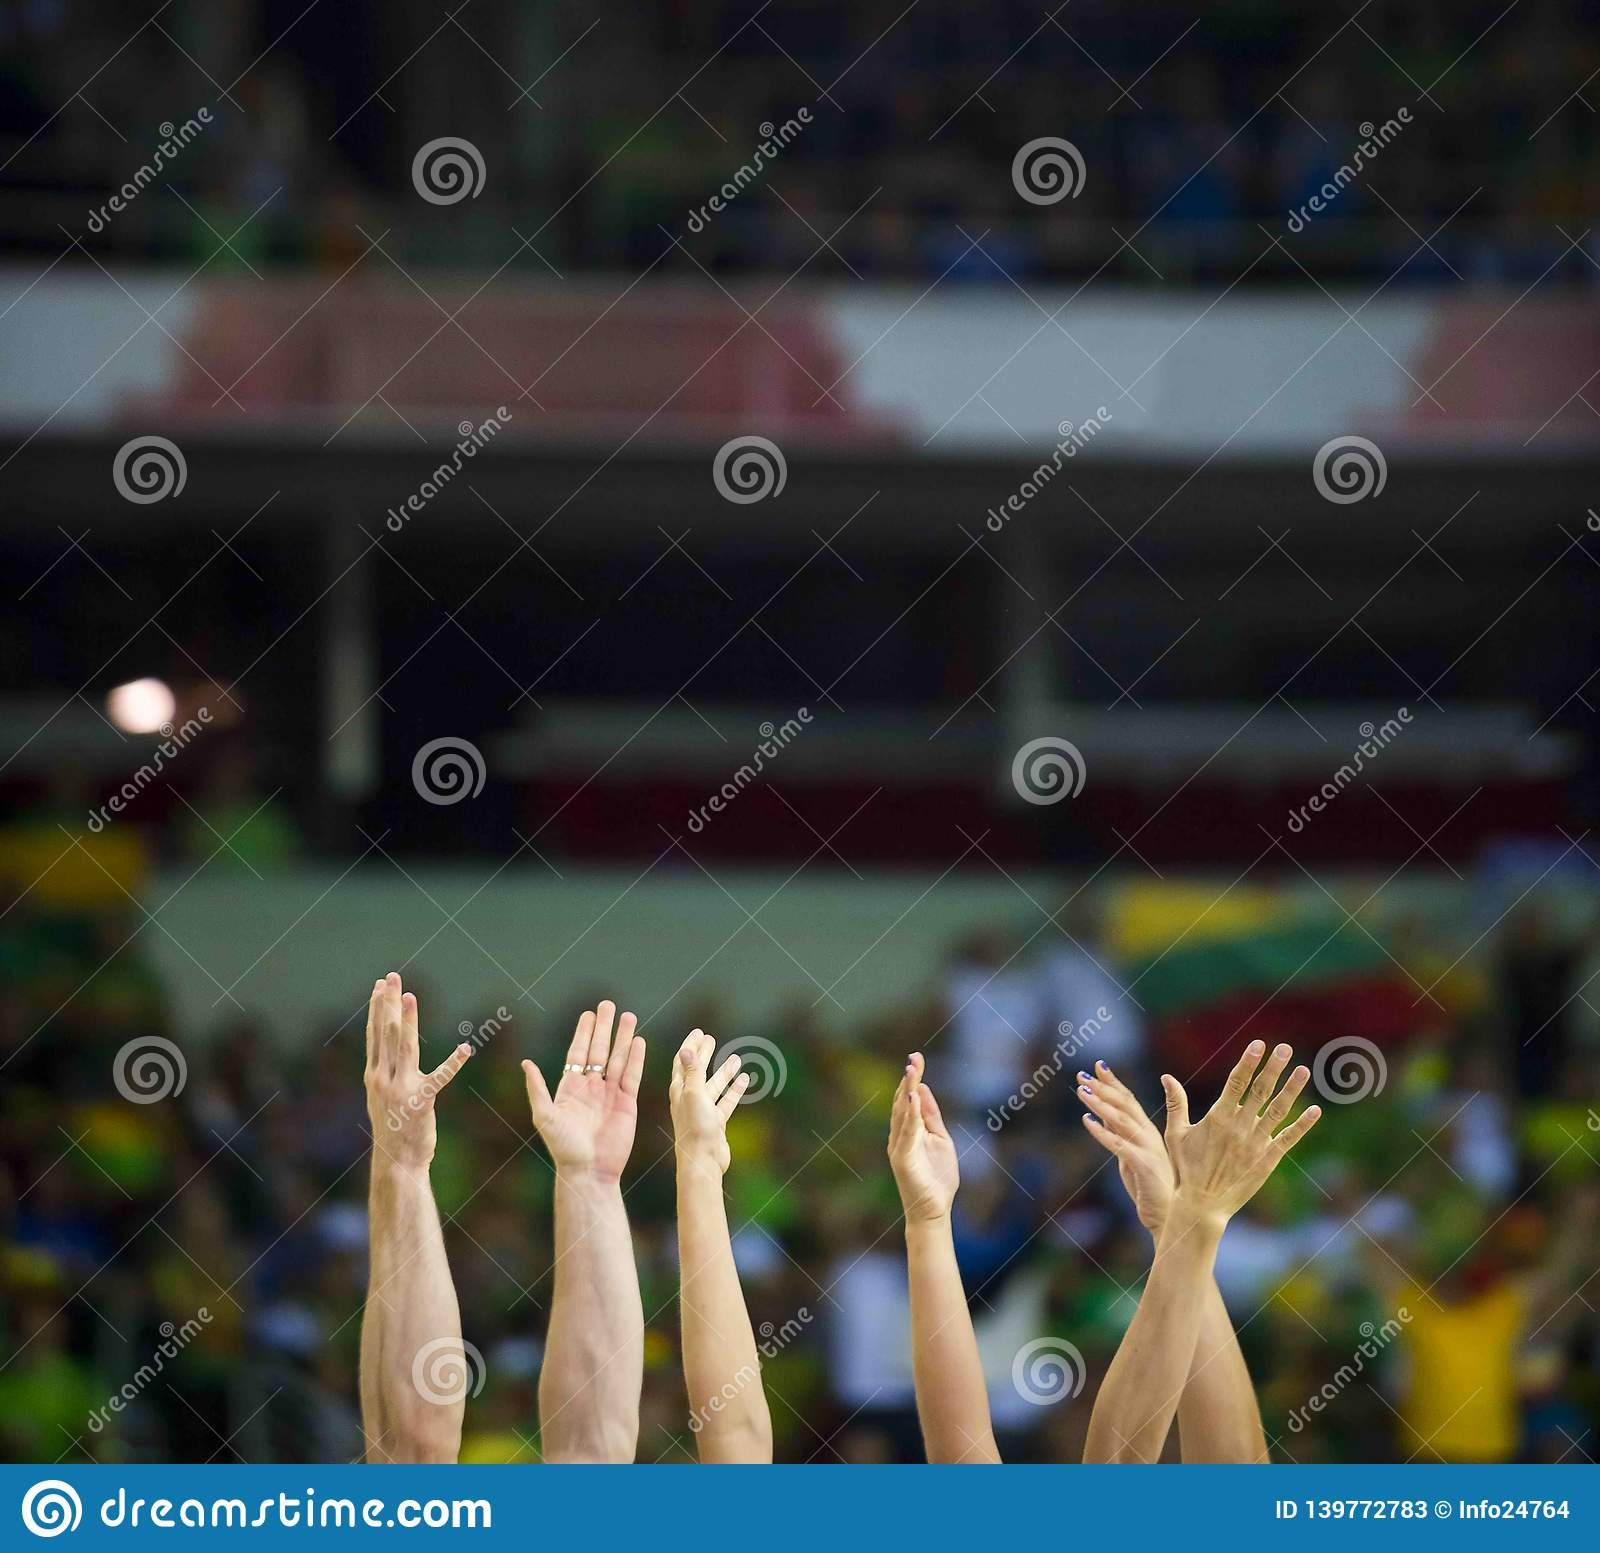 Fans clapping on the podium of the stadium